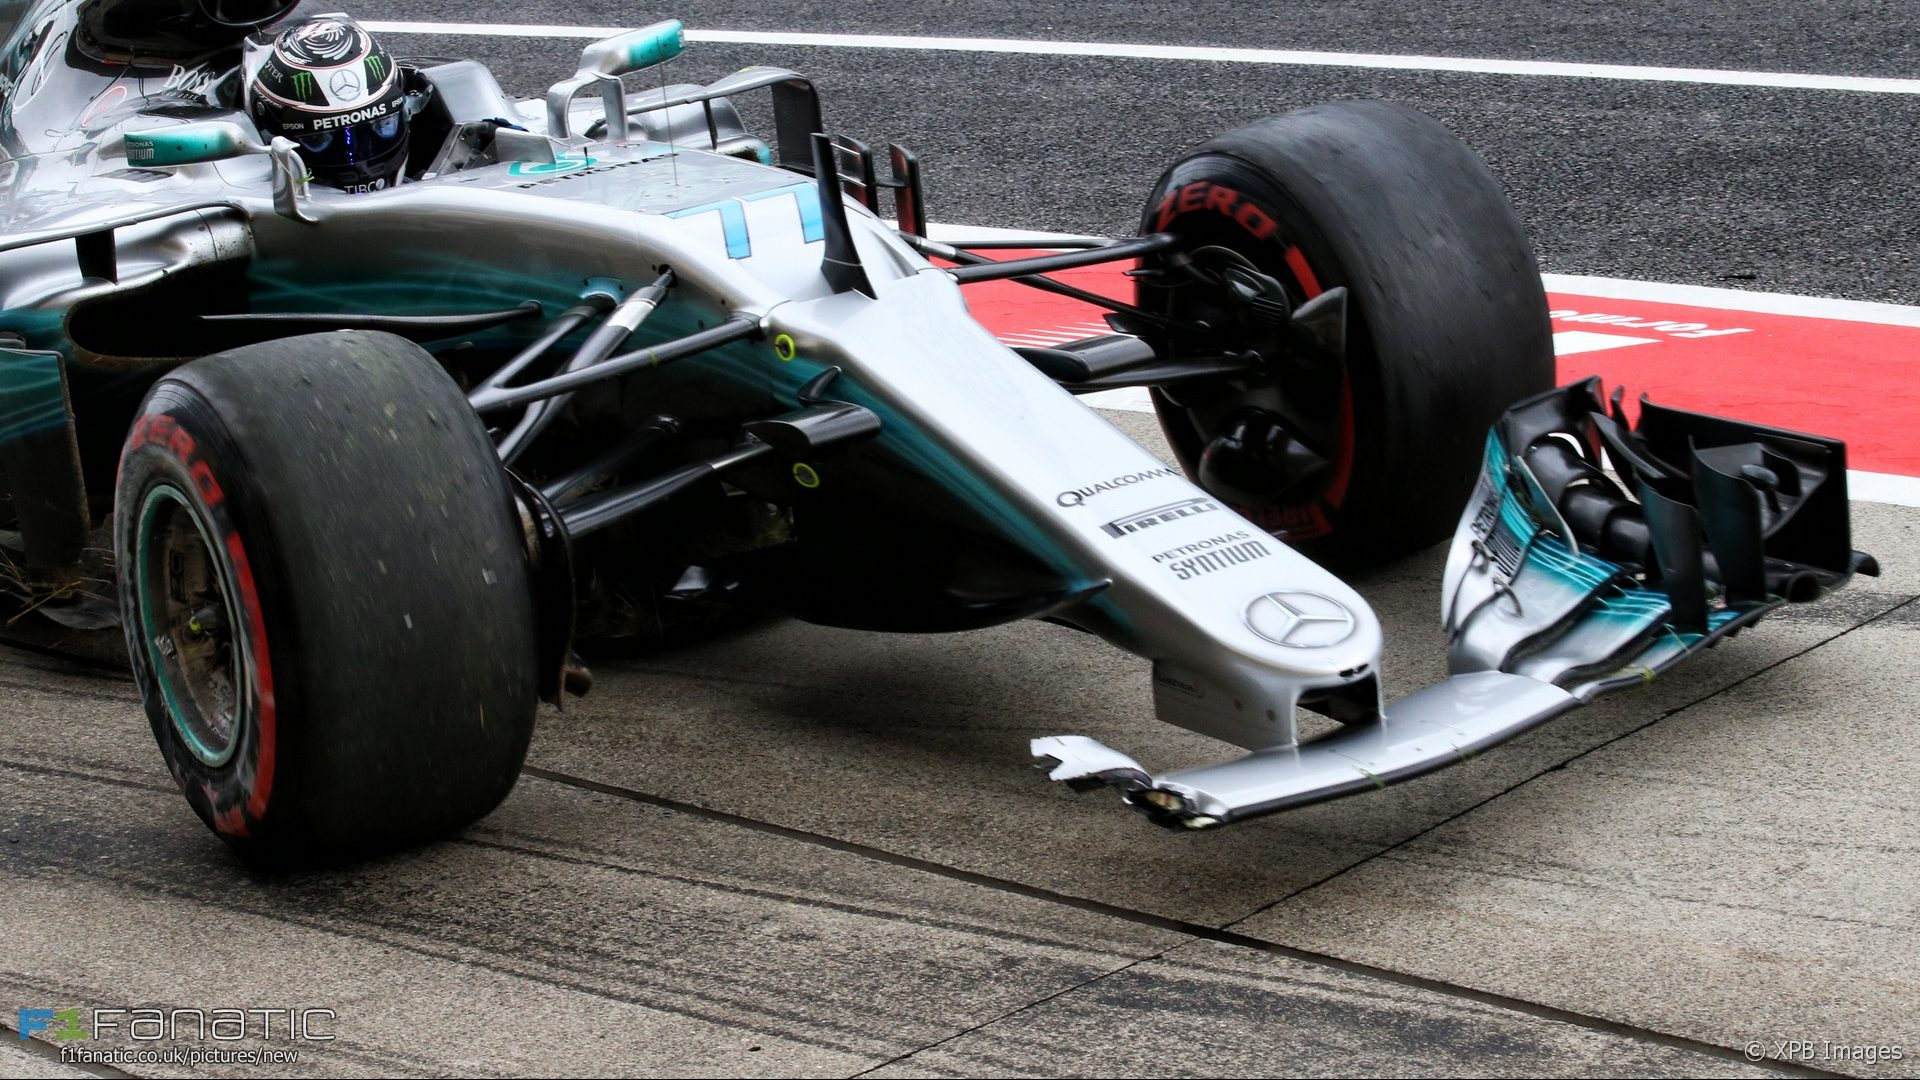 Bottas fastest but crashes in final practice